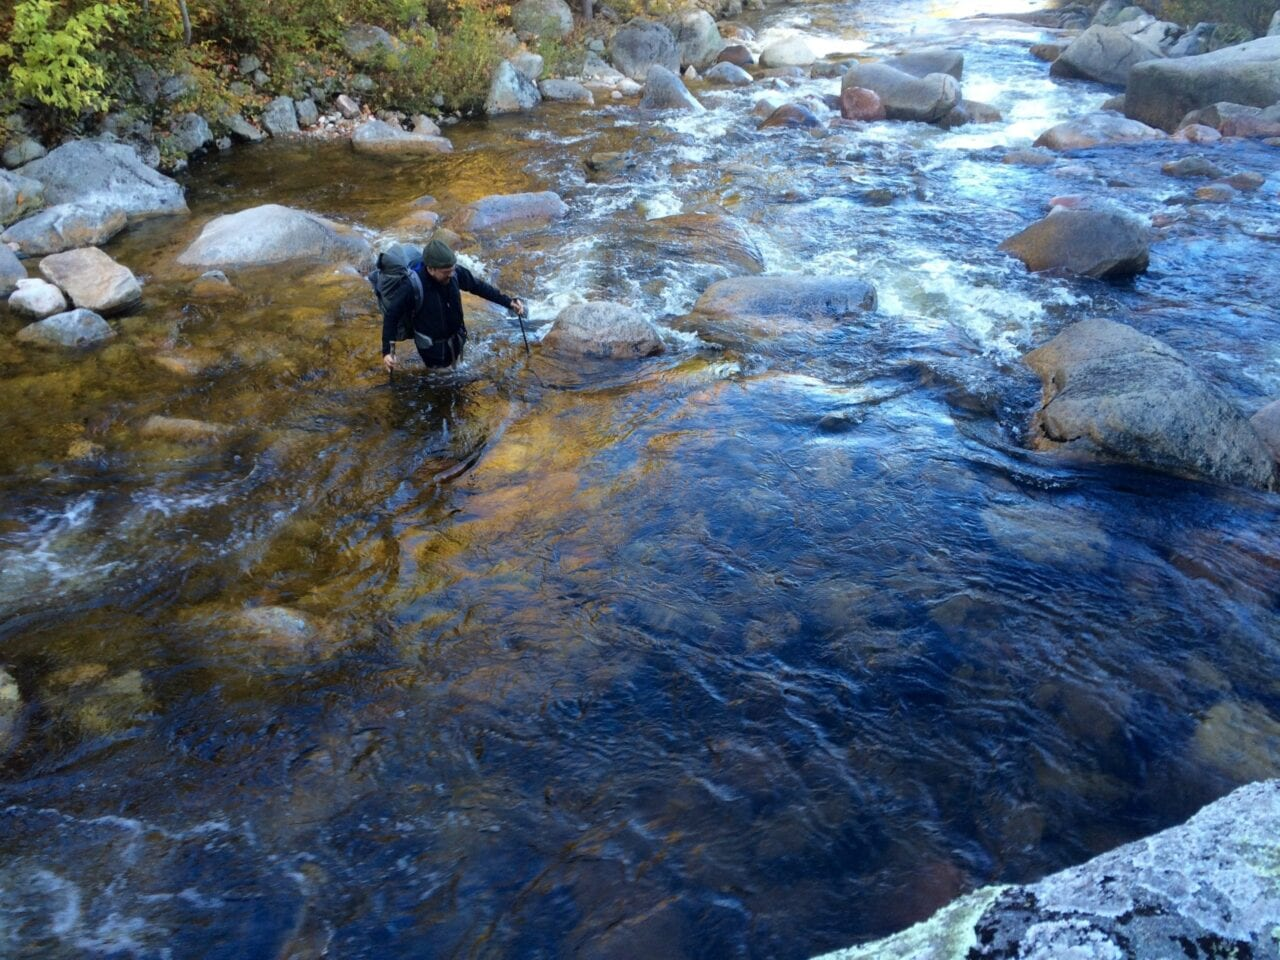 A hiker wades across a clear, flowing mountain river.